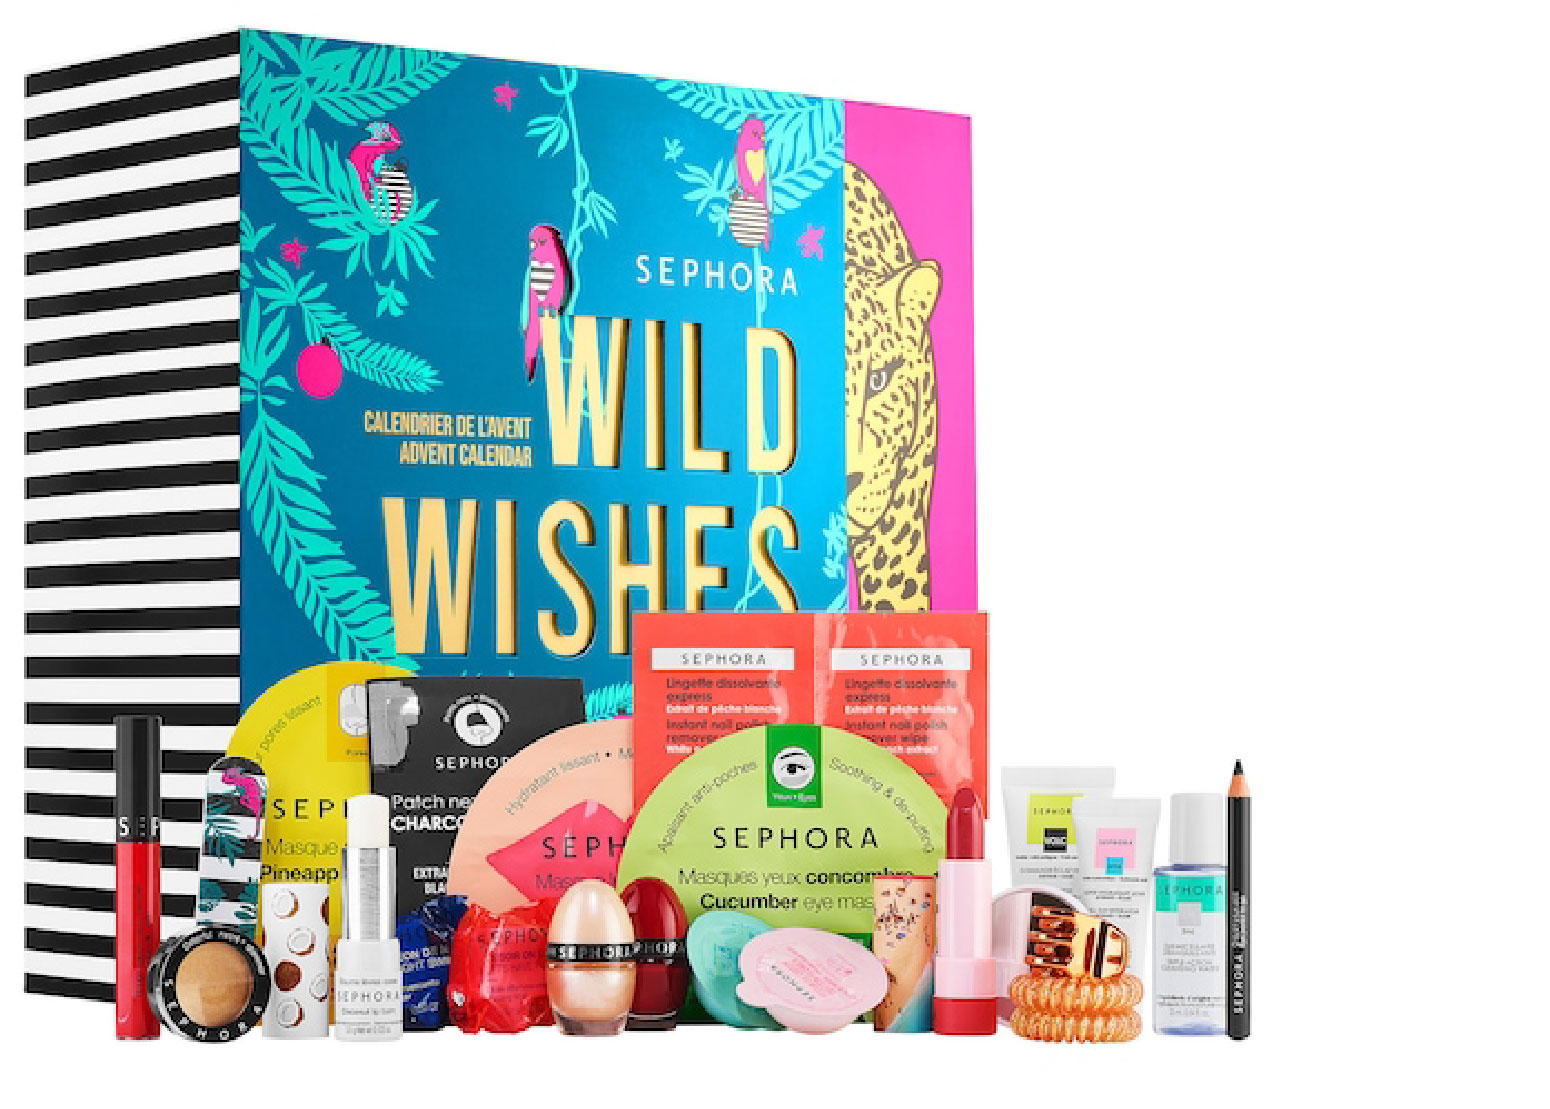 Sephora wild wishes holiday advant calendar